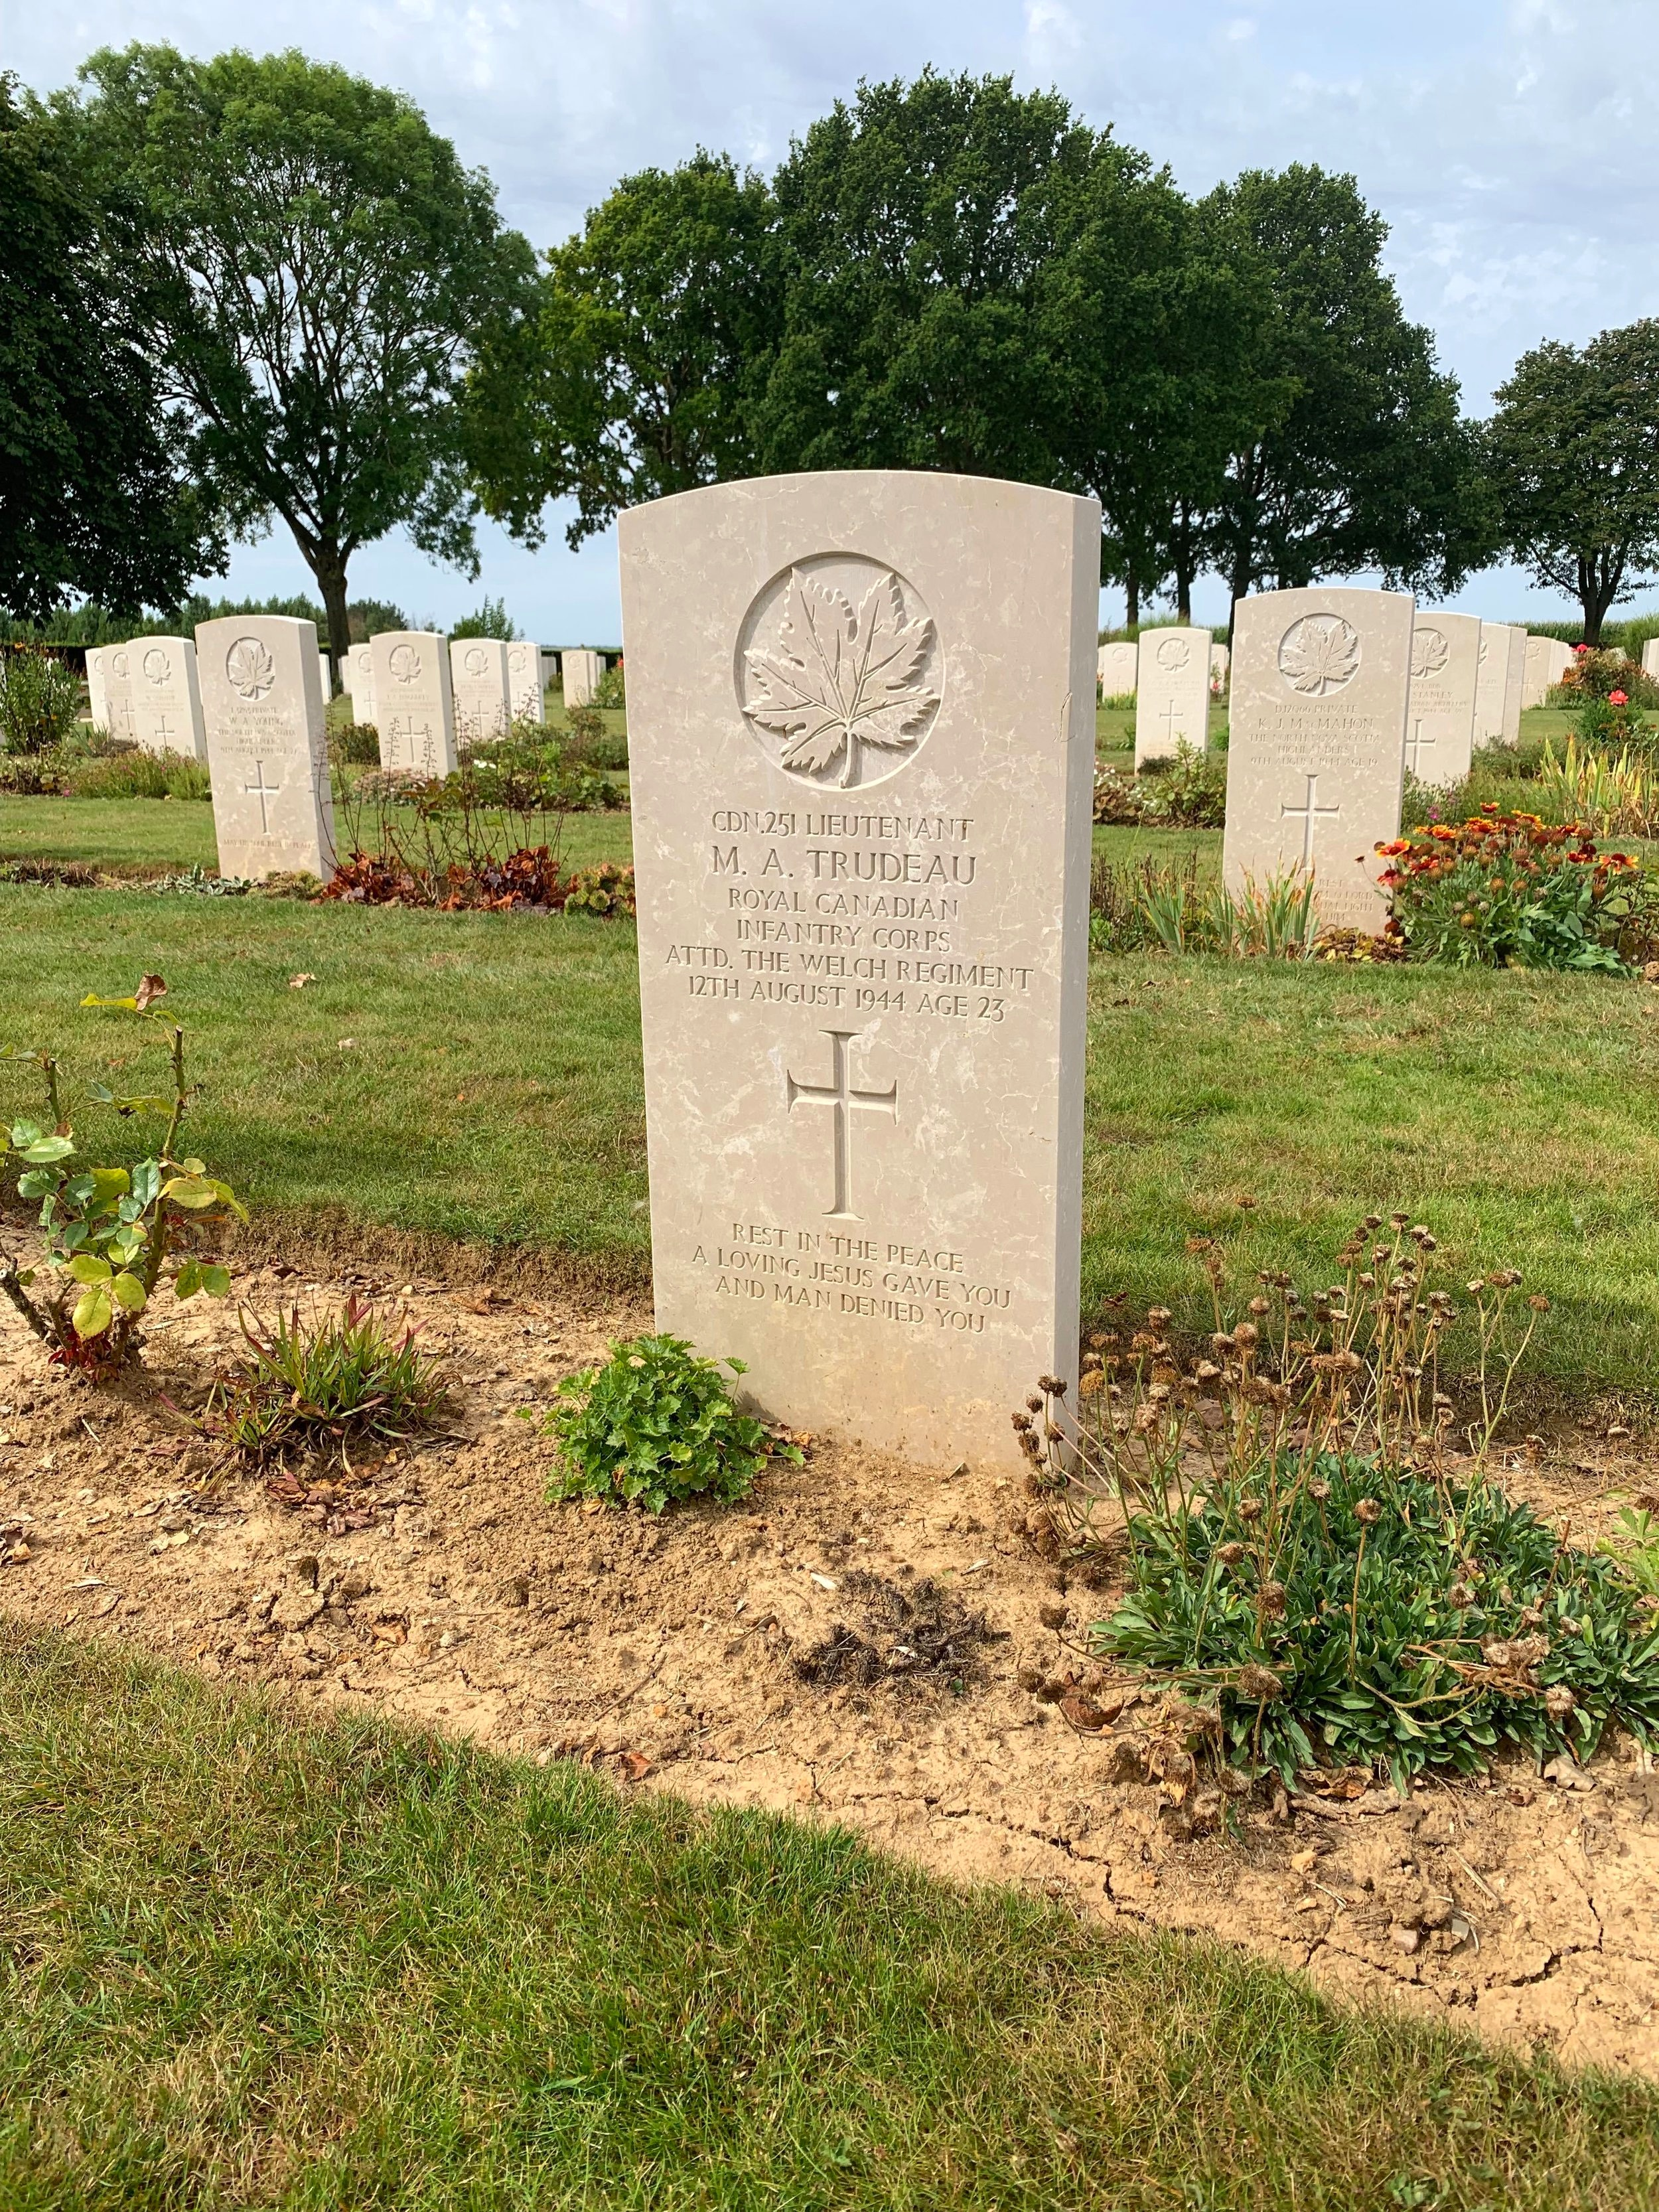 """Lieutenant Maurice Trudeau was one of 75 Canadian officers killed in Normandy while on loan to the British Army. The epitaph on his headstone reads """"Rest in the peace a loving Jesus gave you and man denied you.""""    Courtesy of Jen Sguigna and the Juno Beach Centre Association"""